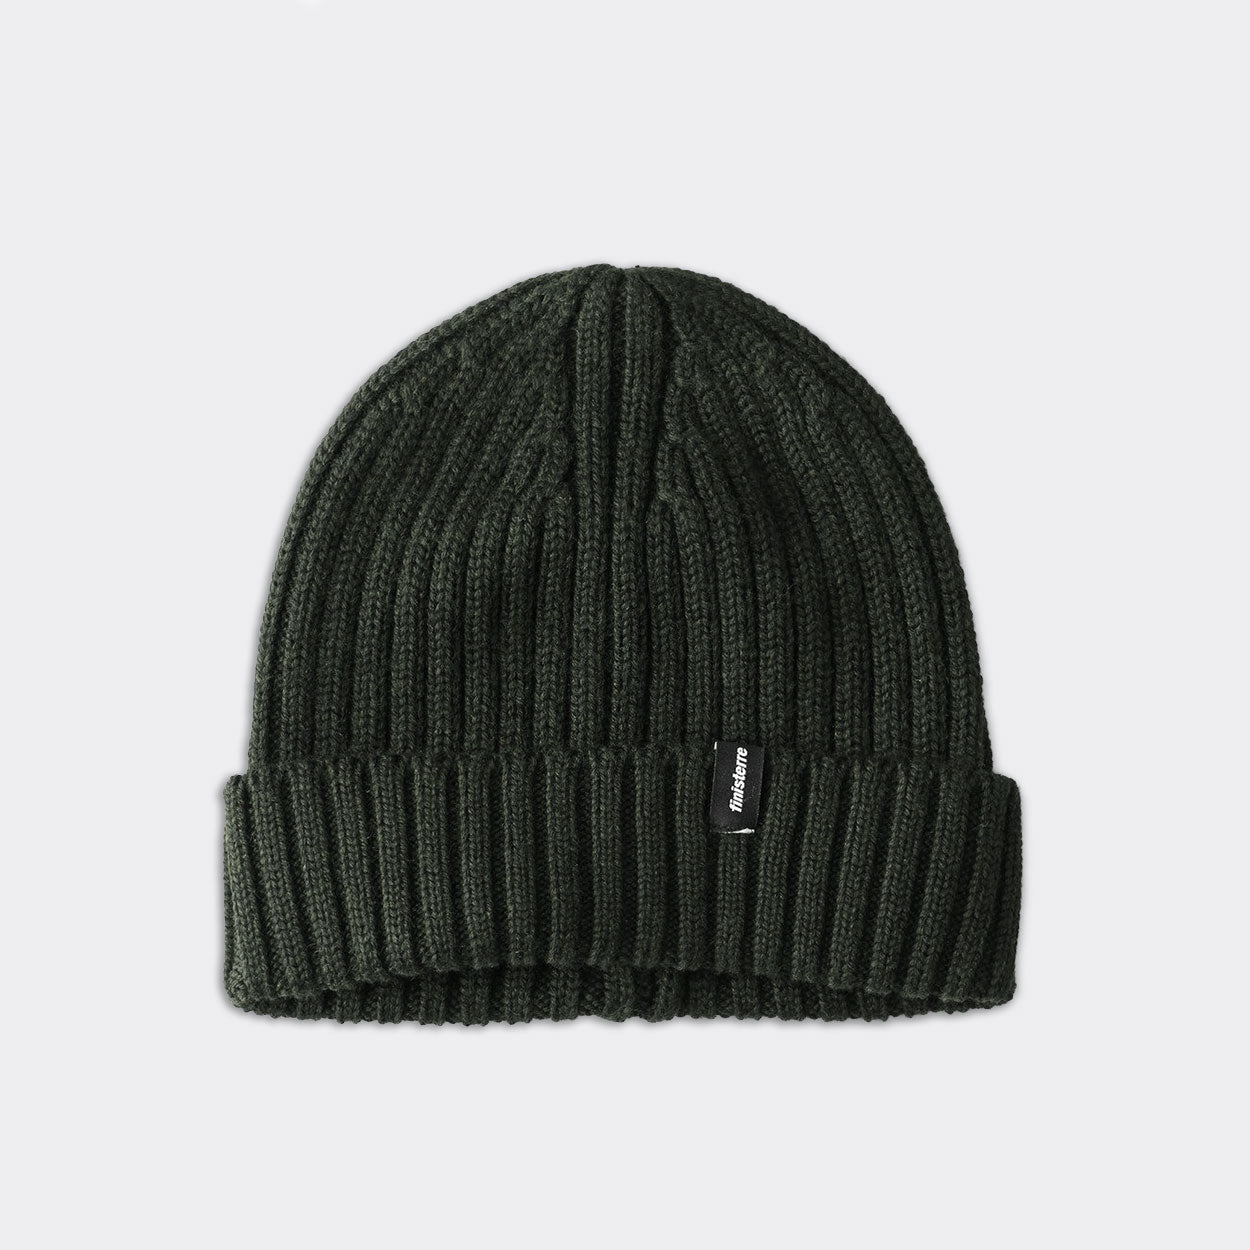 Finisterre Fisherman Beanie - Fern Green